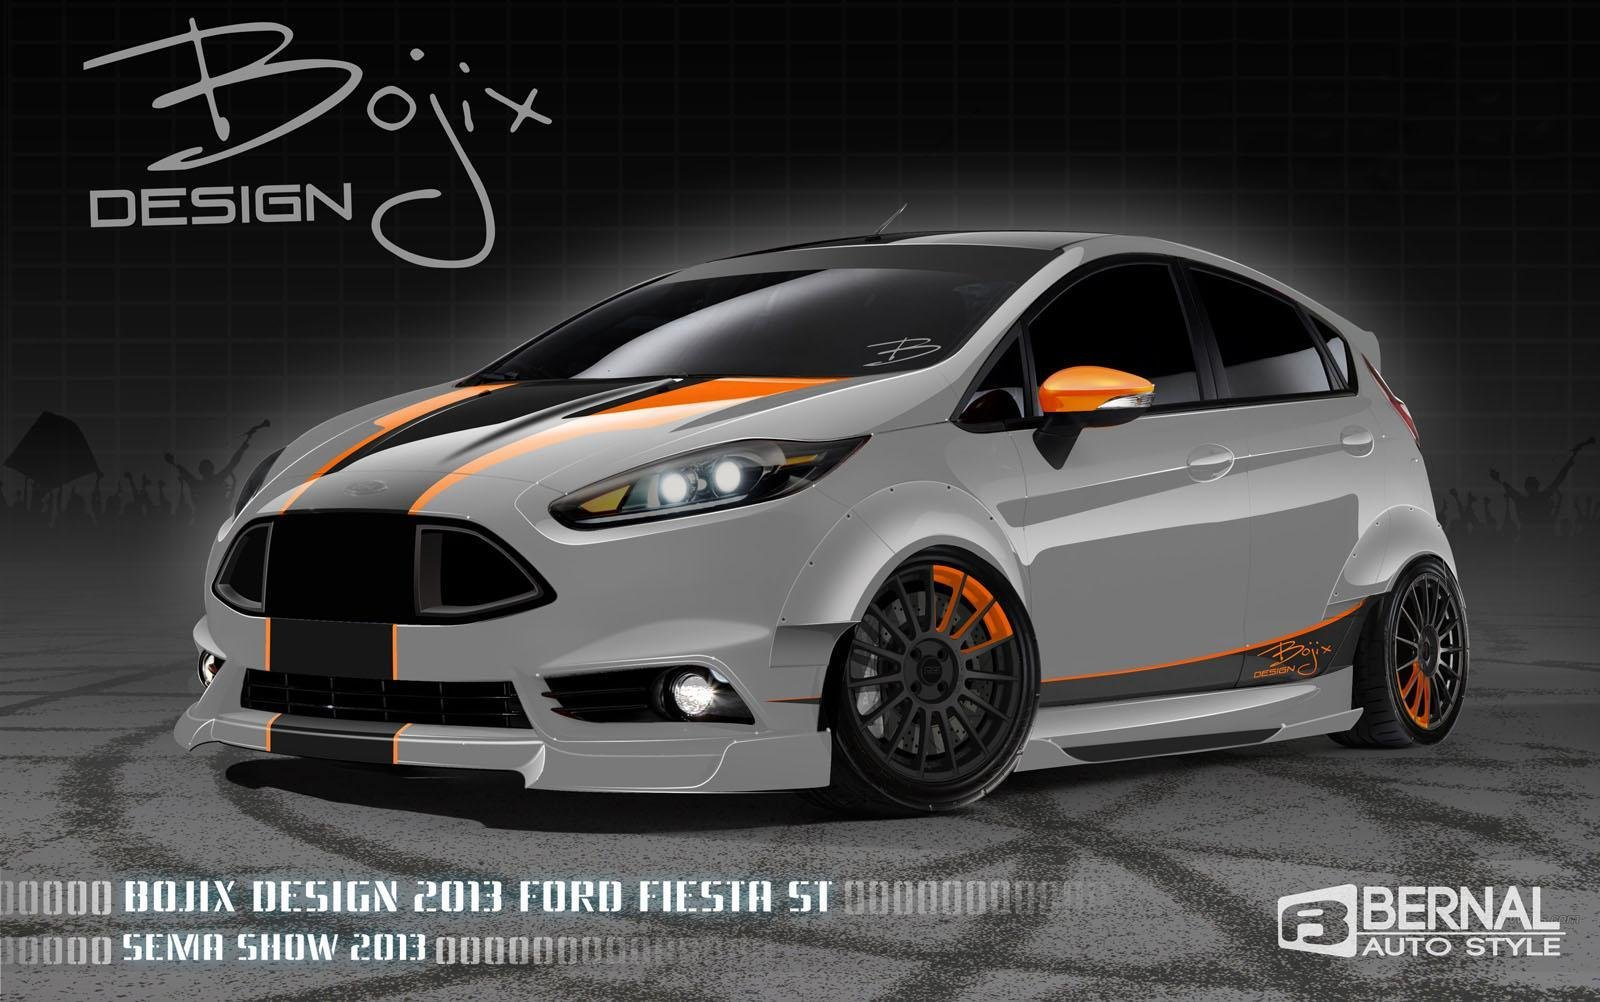 2014 ford fiesta st by bojix design picture 529170 car review top speed. Black Bedroom Furniture Sets. Home Design Ideas